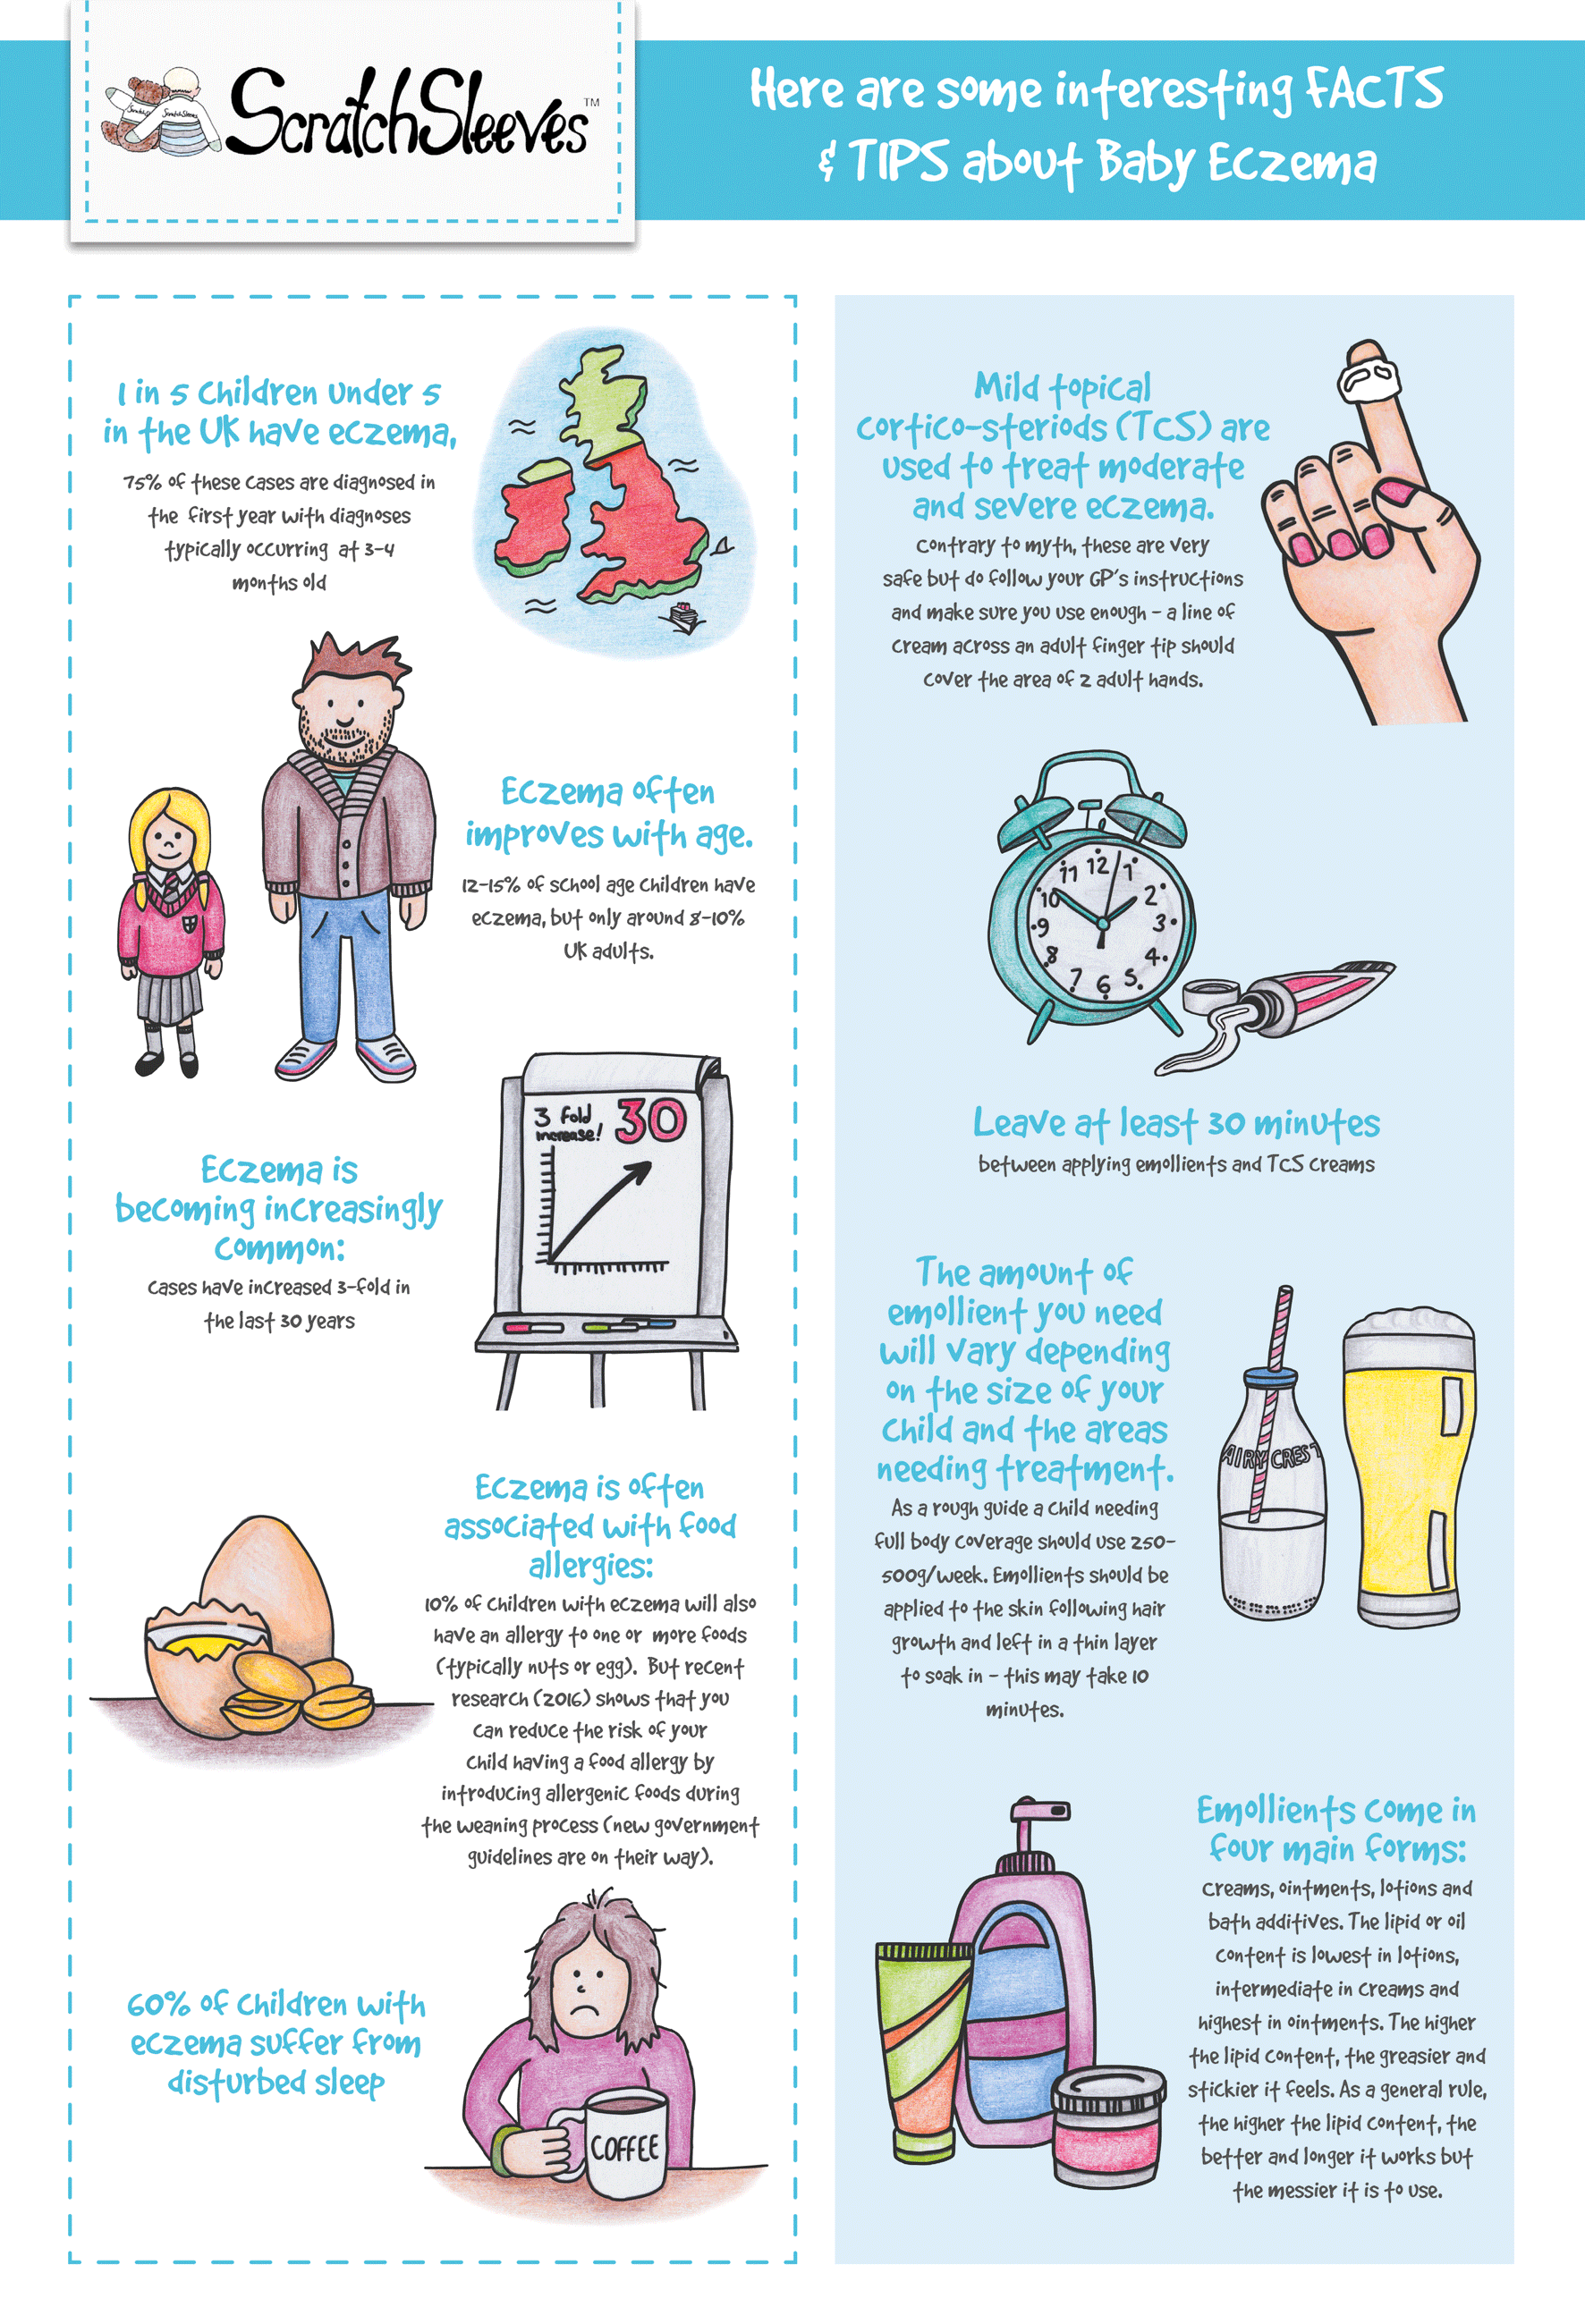 Baby eczema infographic from ScratchSleeves #EczemaCauses ...